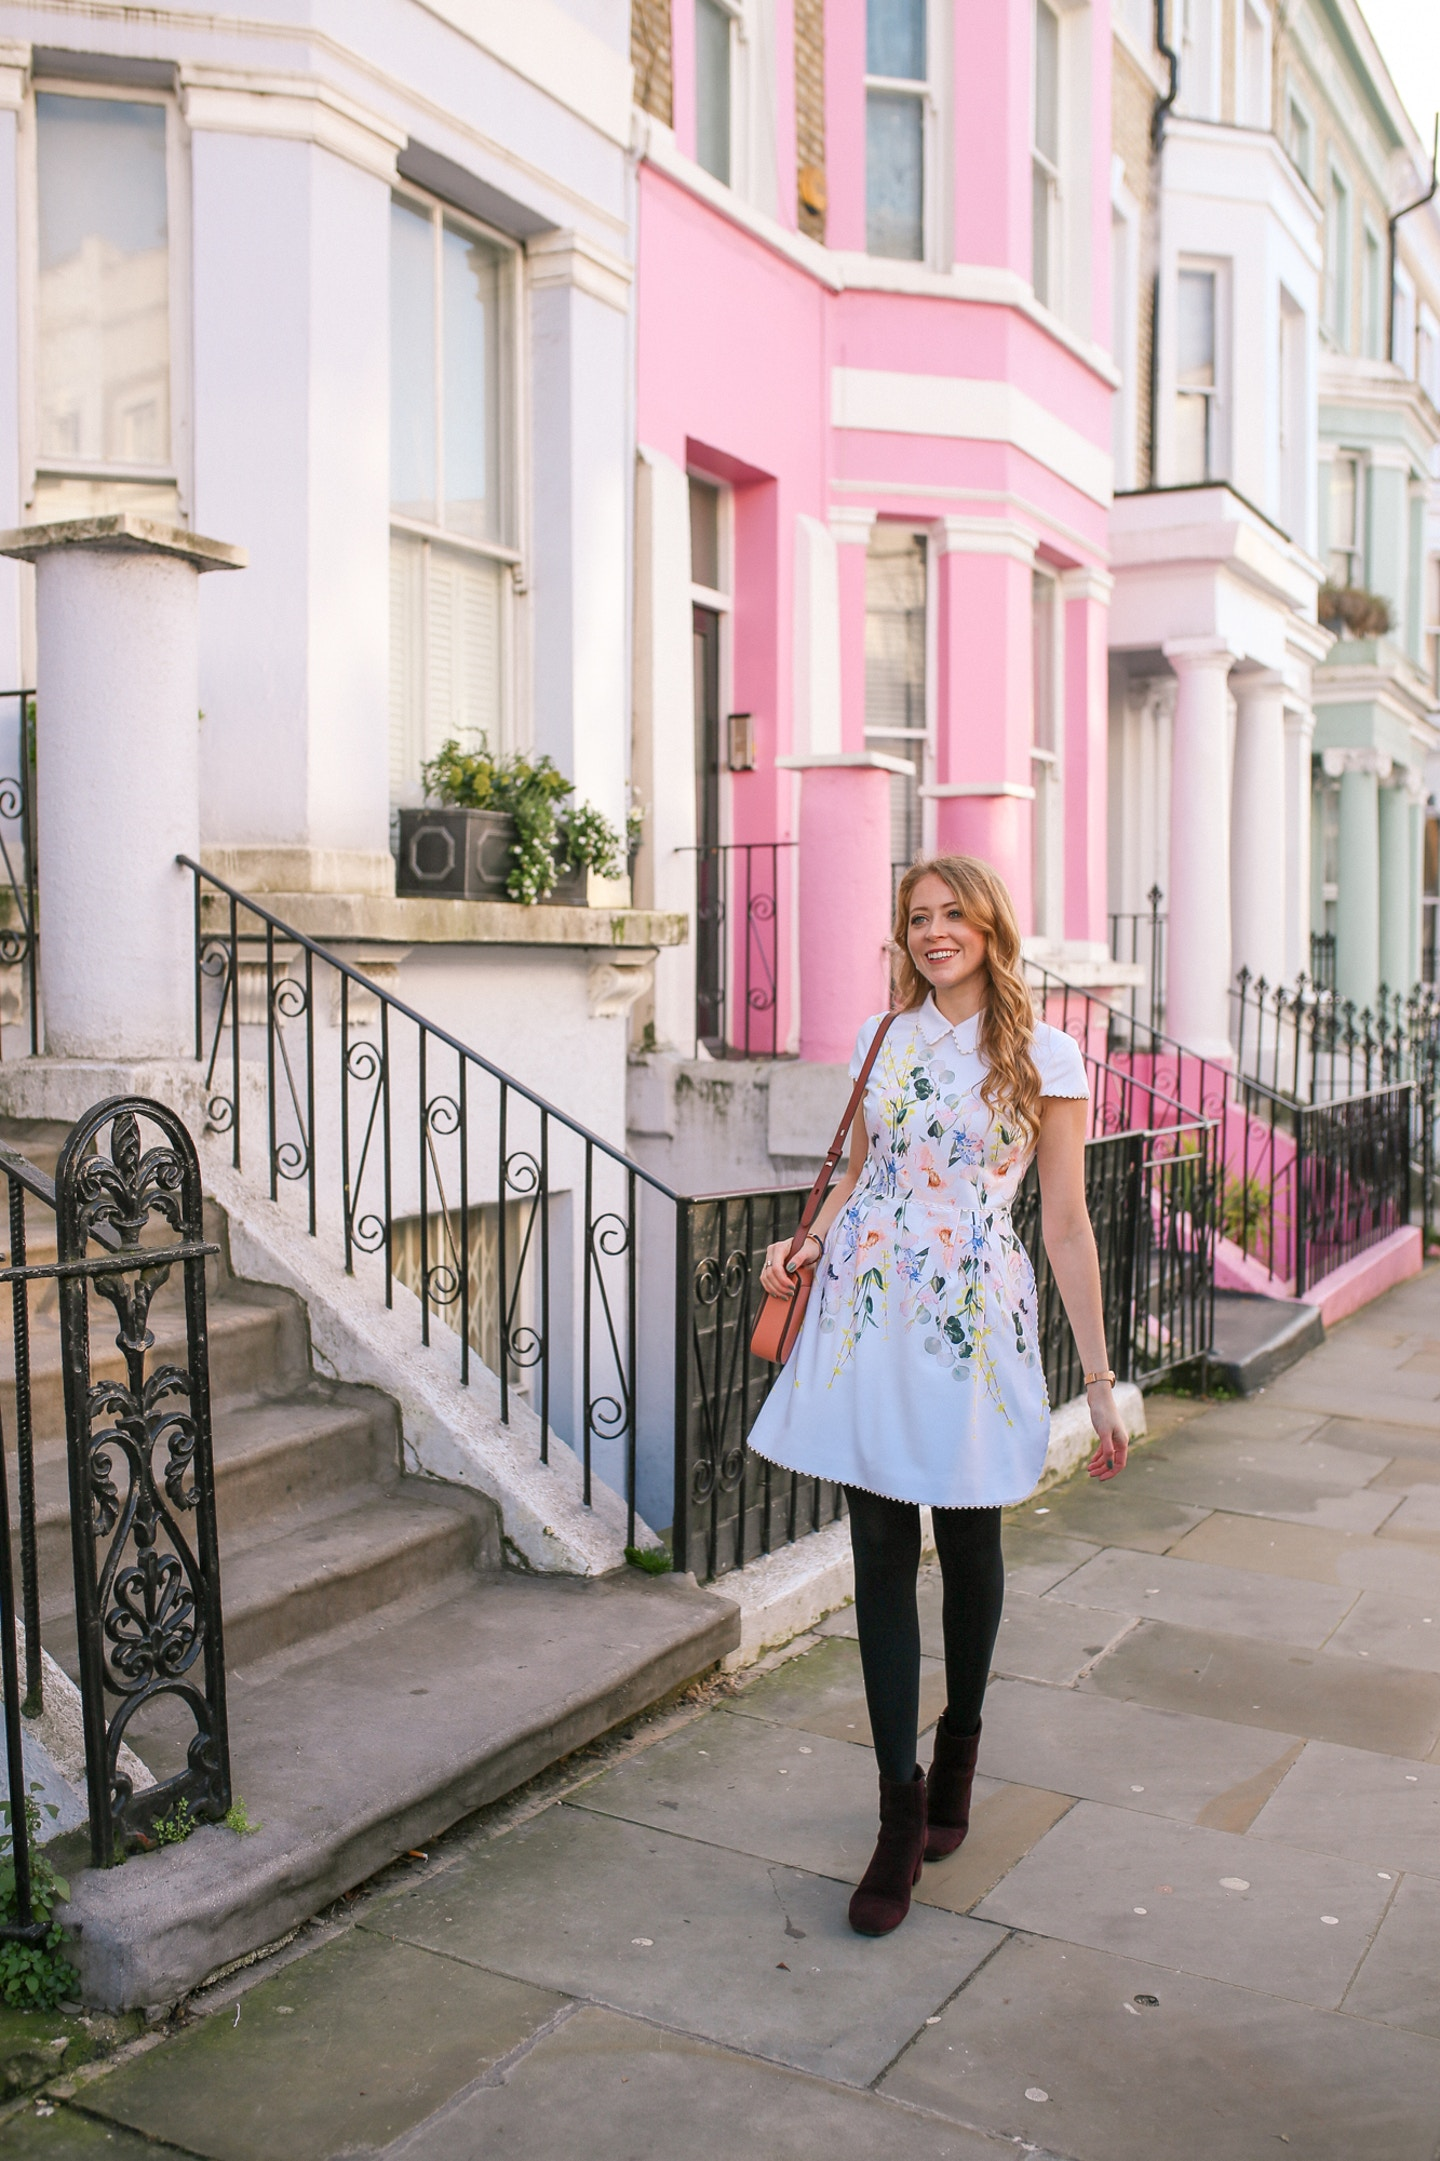 Top 10 Things to do in Notting Hill London